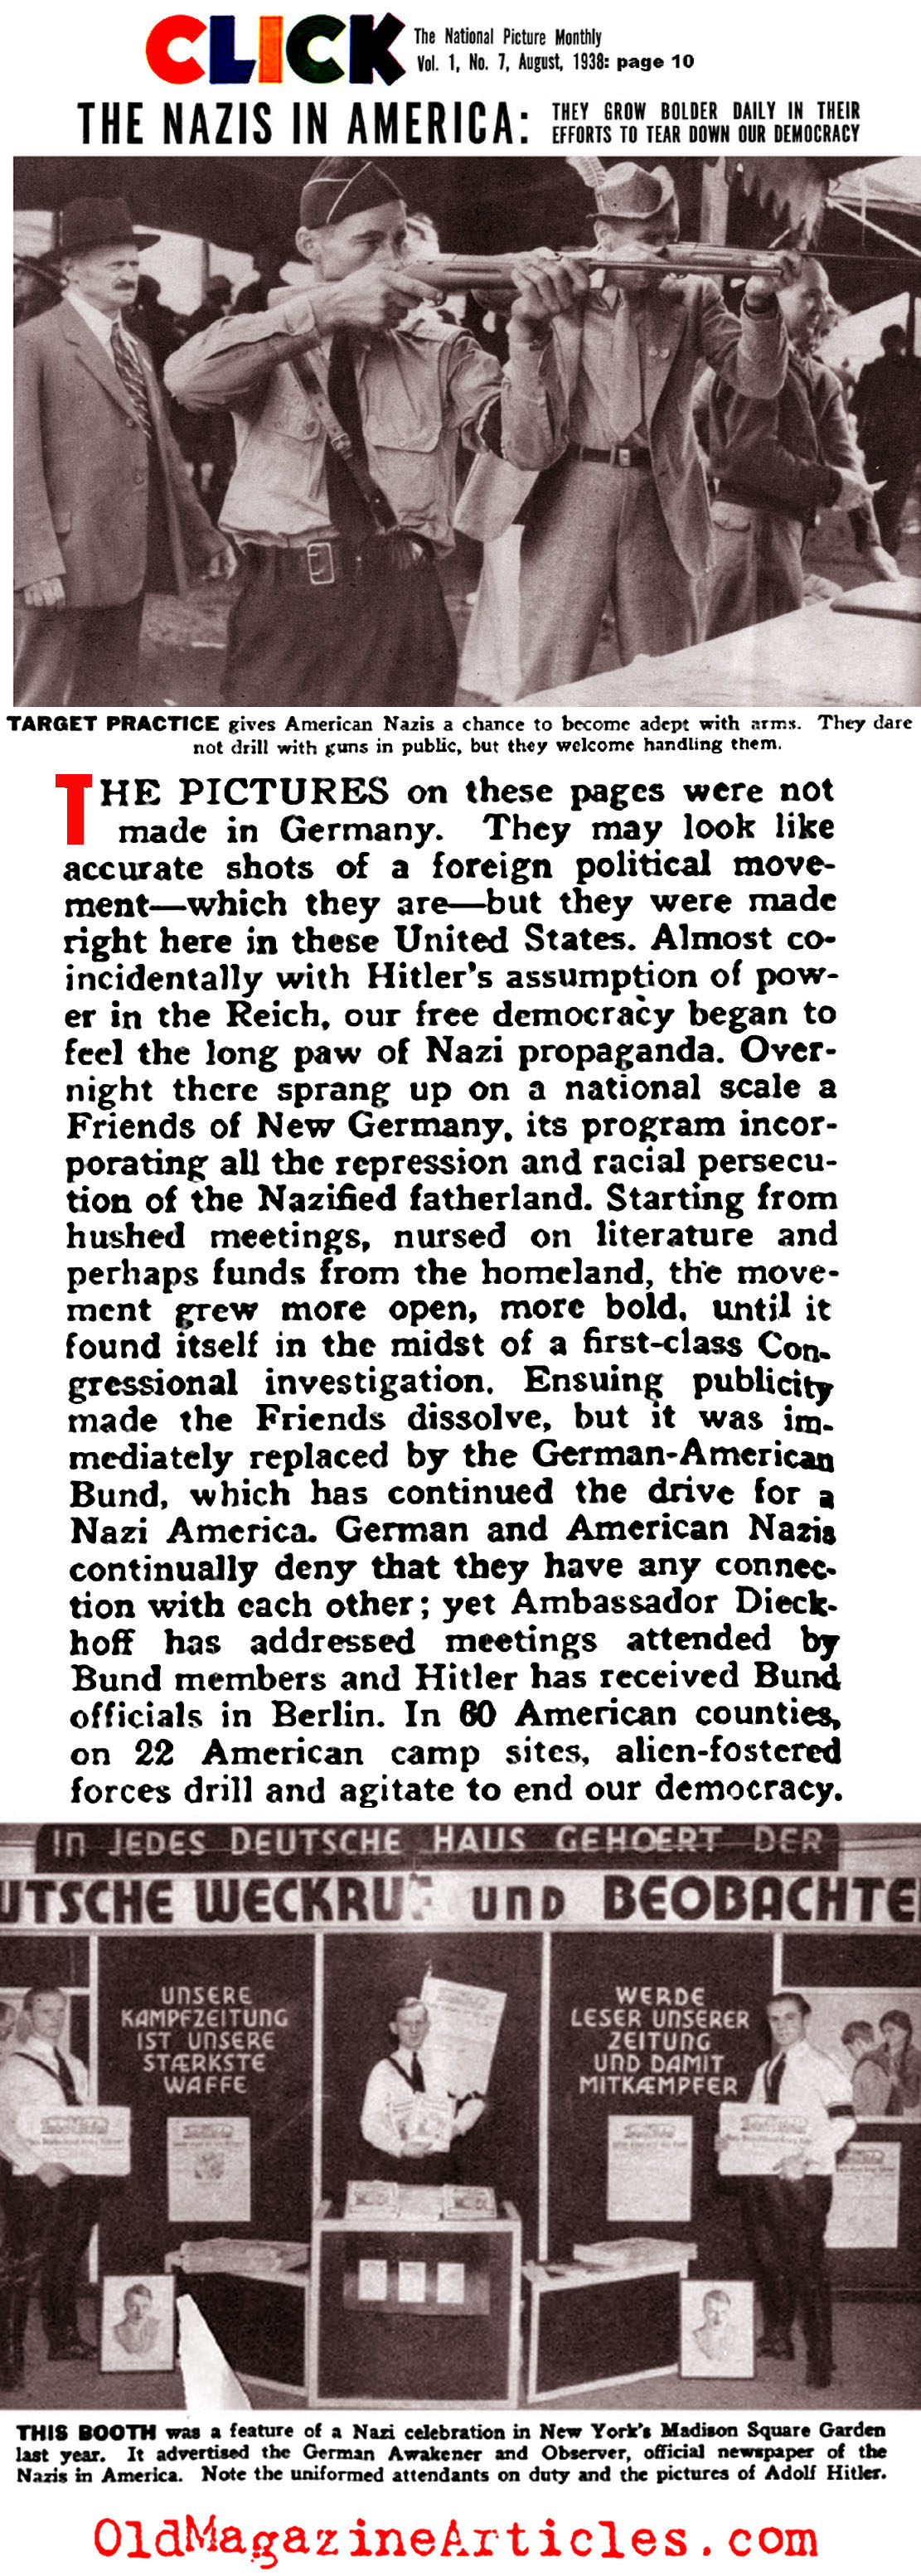 nazi party essay Published: mon, 5 dec 2016 adolf hitler and the nazi party wholeheartedly believed that by applying a selective breeding scheme encouraged by social darwinism, that the human genome could be greatly improved - similar to applying this notion towards breeding superior strains of dog and cattle as seen today.